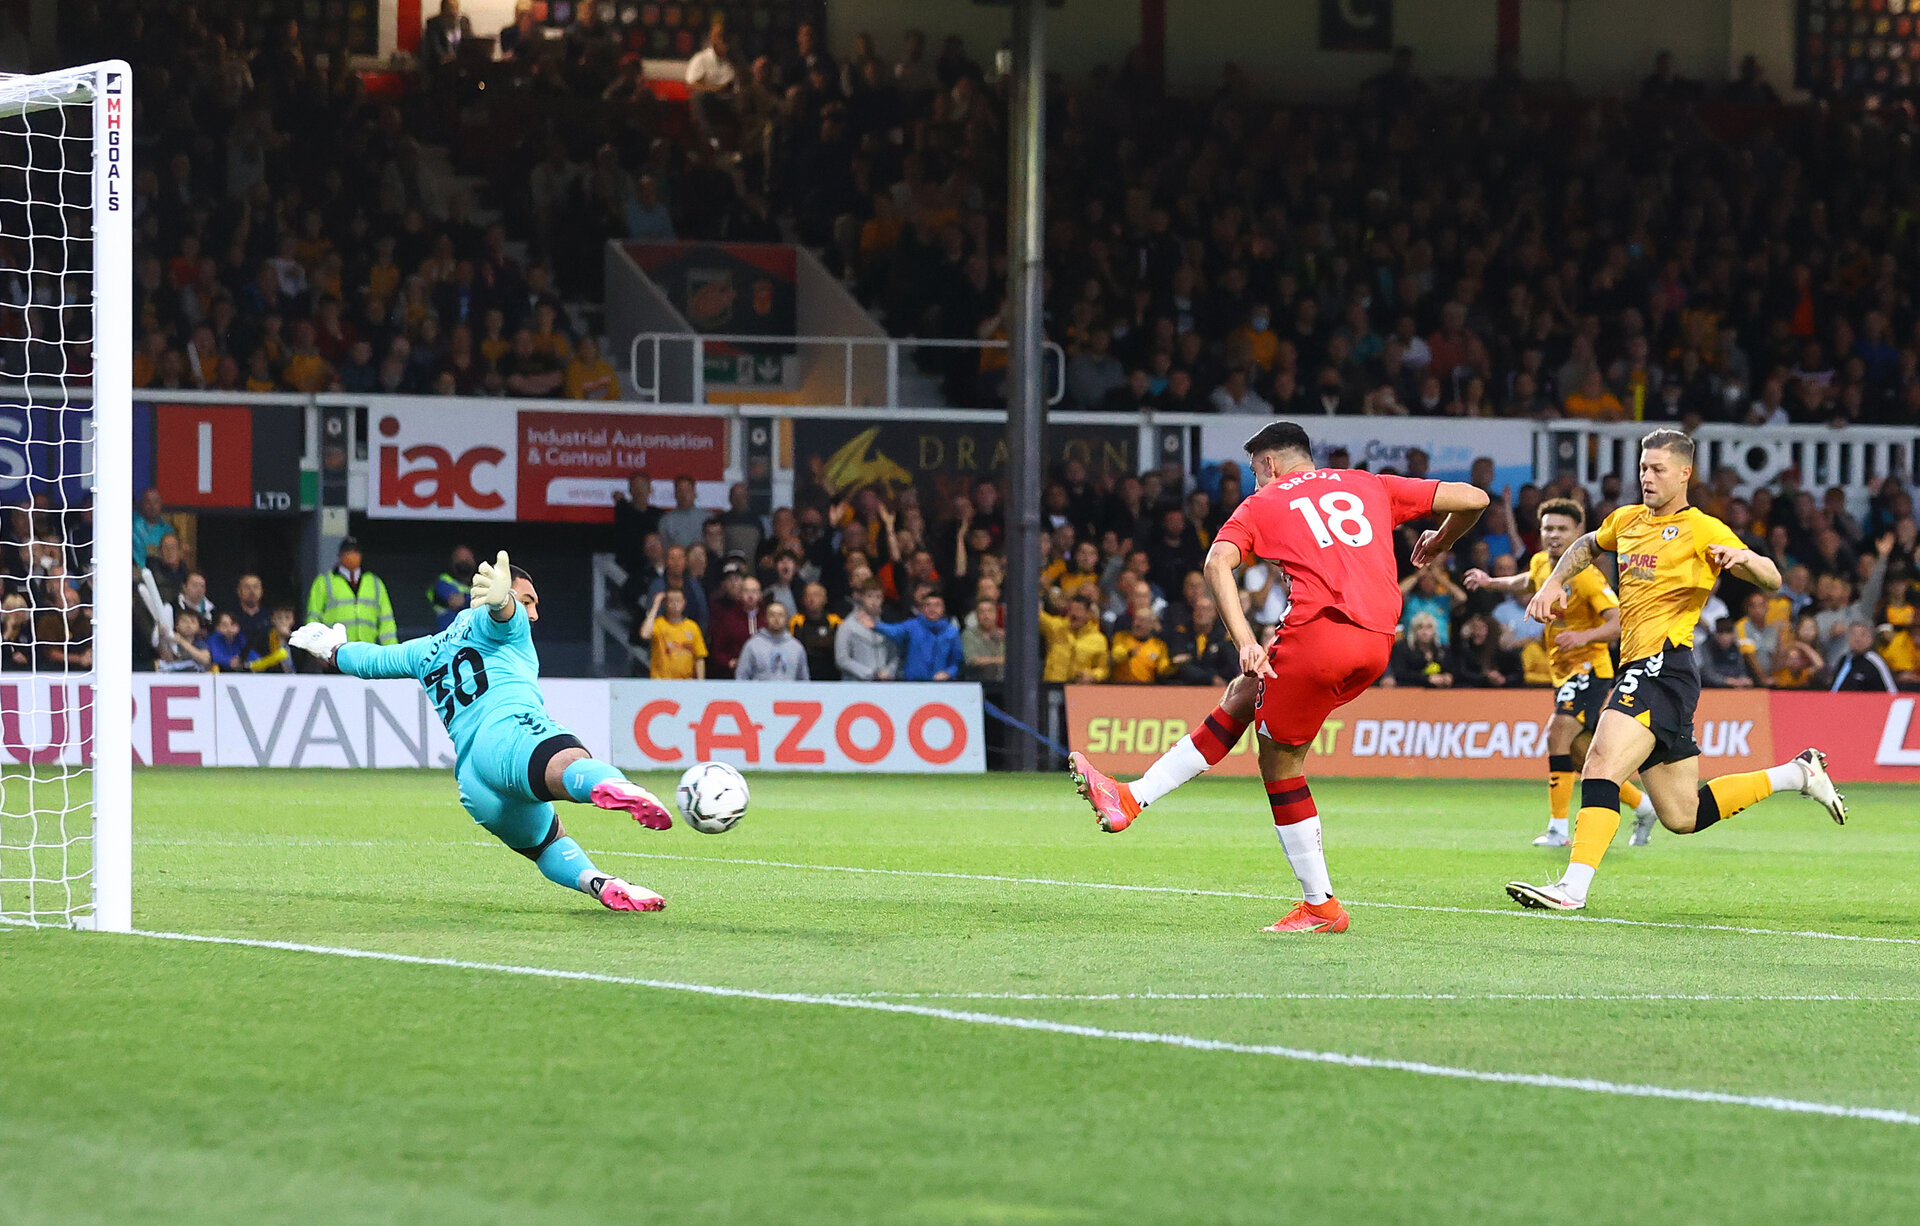 NEWPORT, WALES - AUGUST 25: Armando Broja of Southampton scores the first goal of the game during the Carabao Cup second round match between Newport County and Southampton FC, at Rodney Parade on August 25, 2021 in Newport, Wales. (Photo by Matt Watson/Southampton FC via Getty Images)